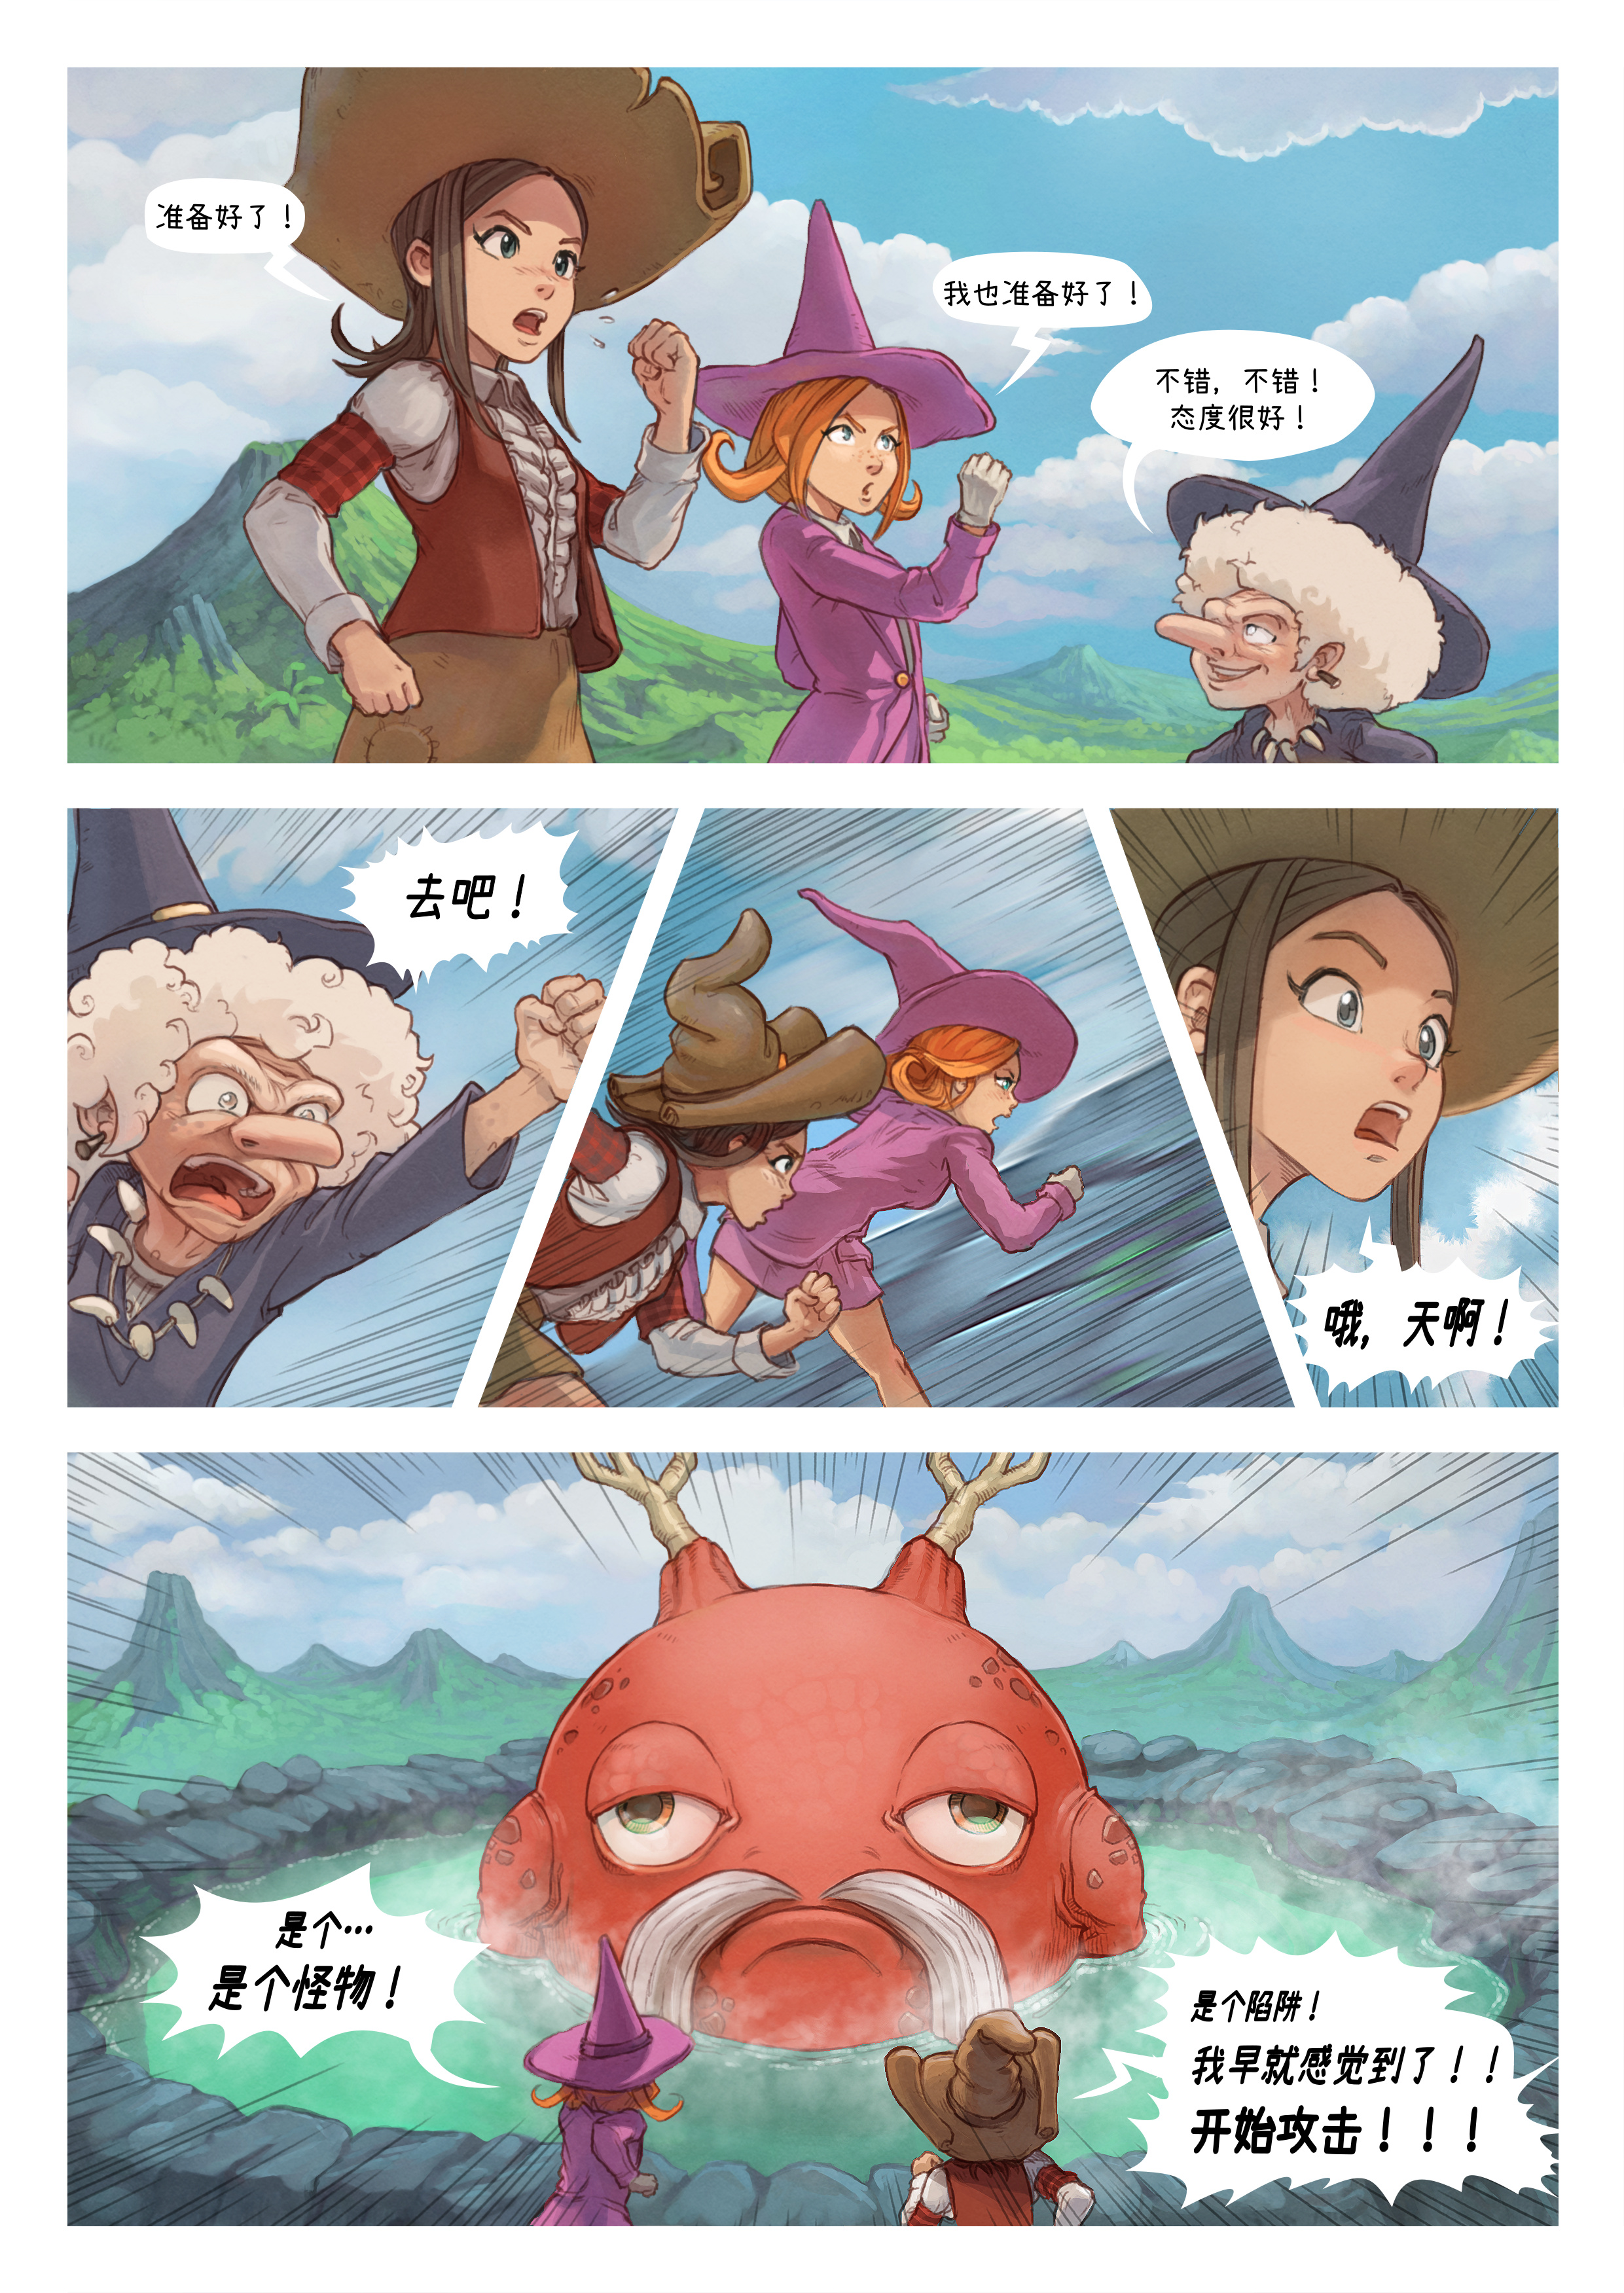 A webcomic page of Pepper&Carrot, 漫画全集 16 [cn], 页面 5